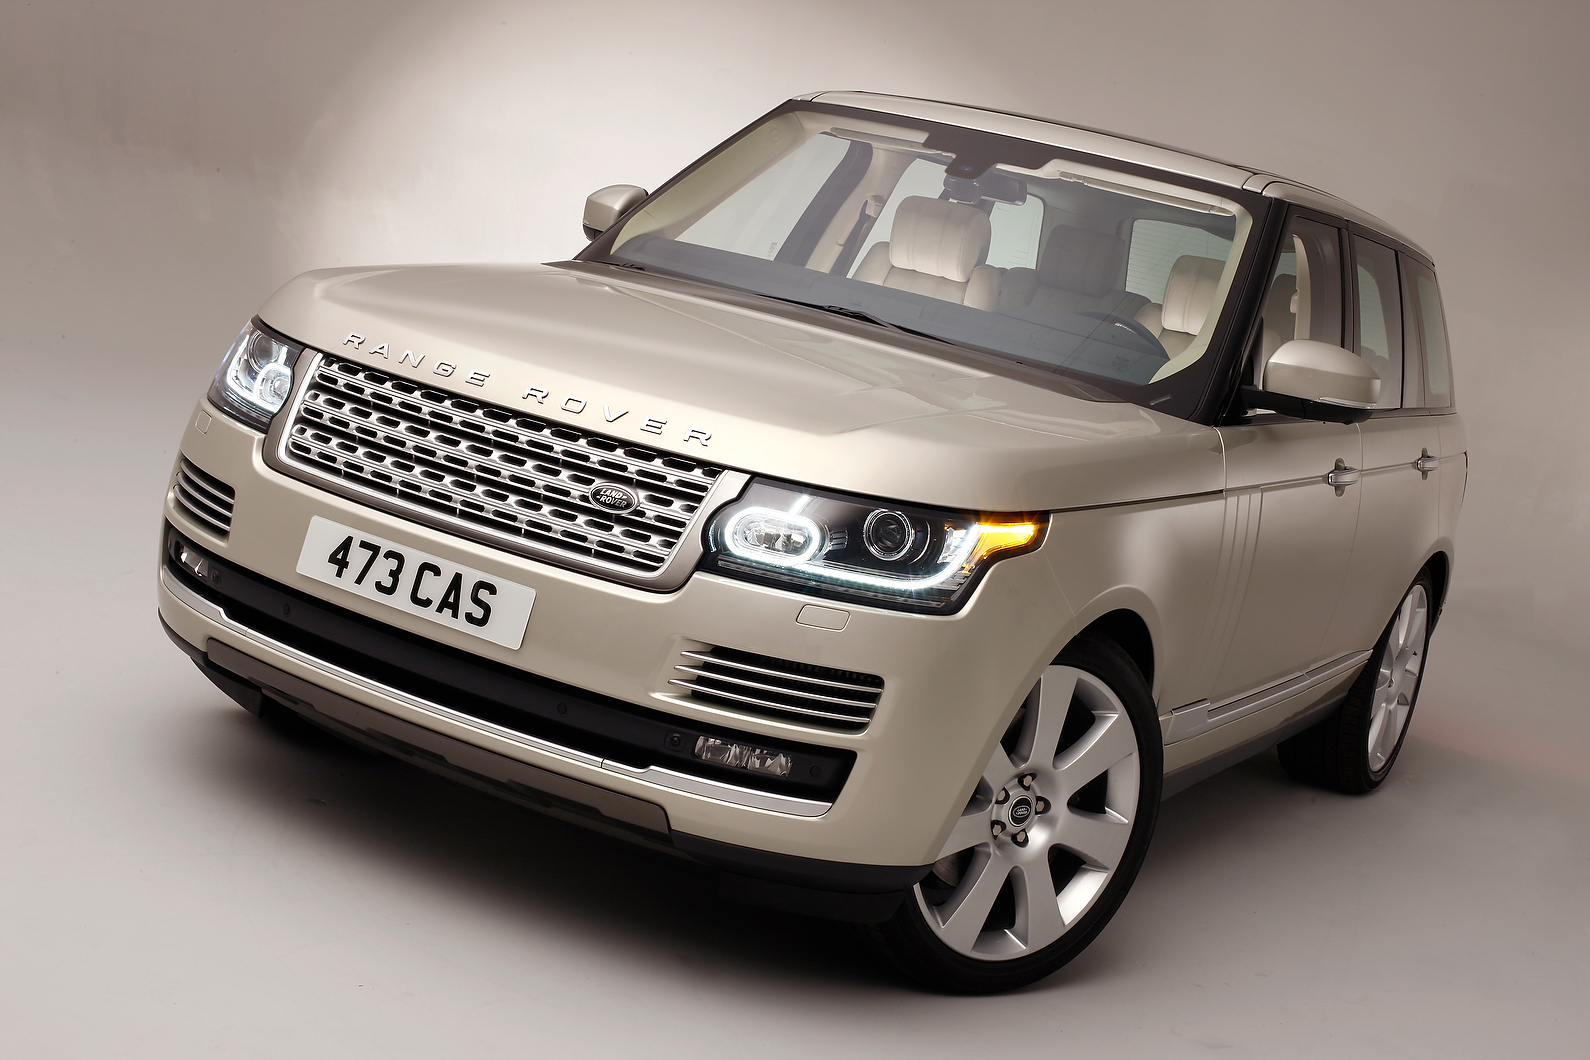 styling cues borrowed from evoque for new range rover. Black Bedroom Furniture Sets. Home Design Ideas